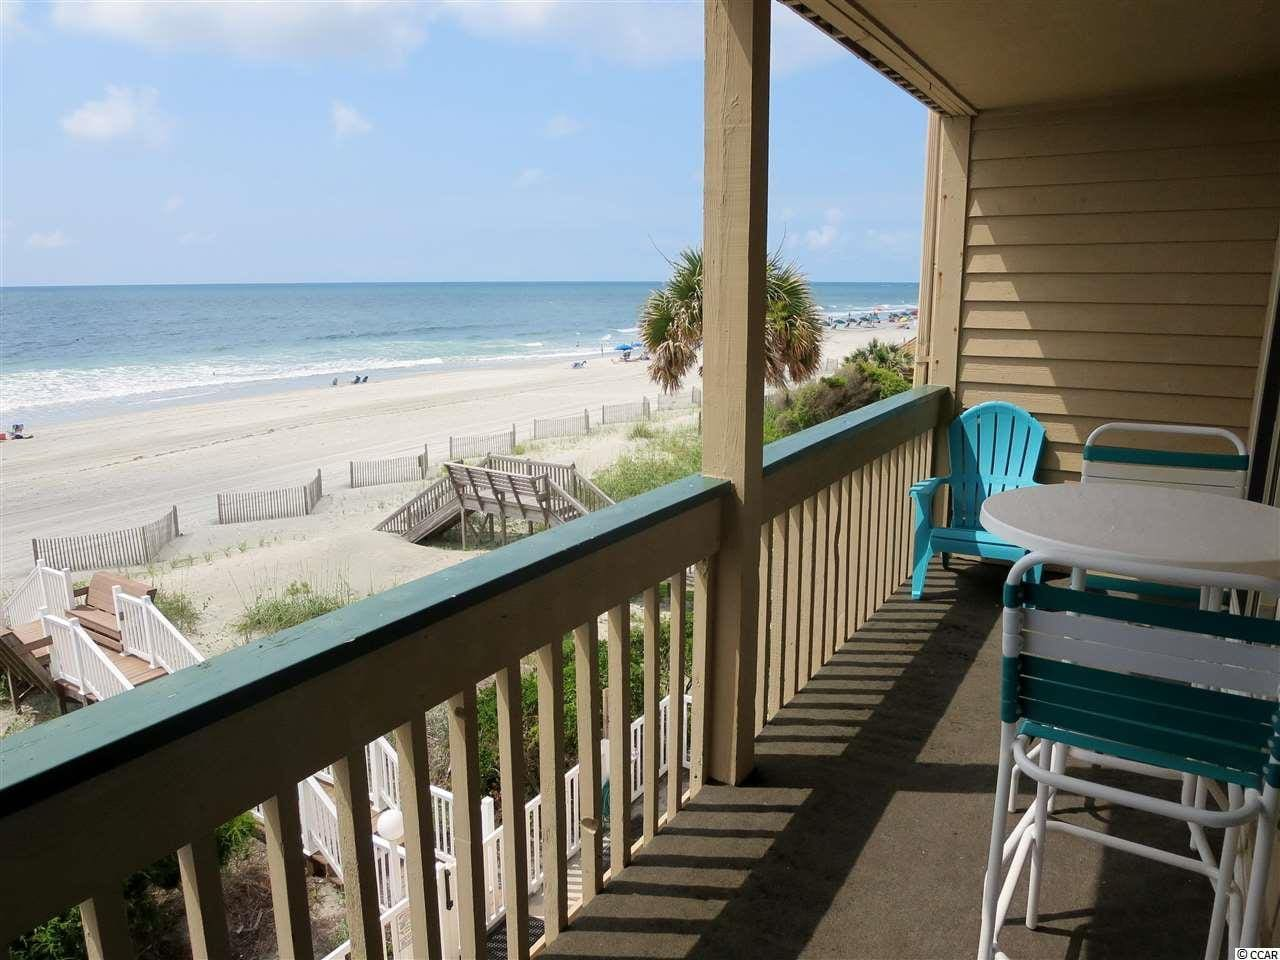 You just can't get any closer to the beach or beat this view!